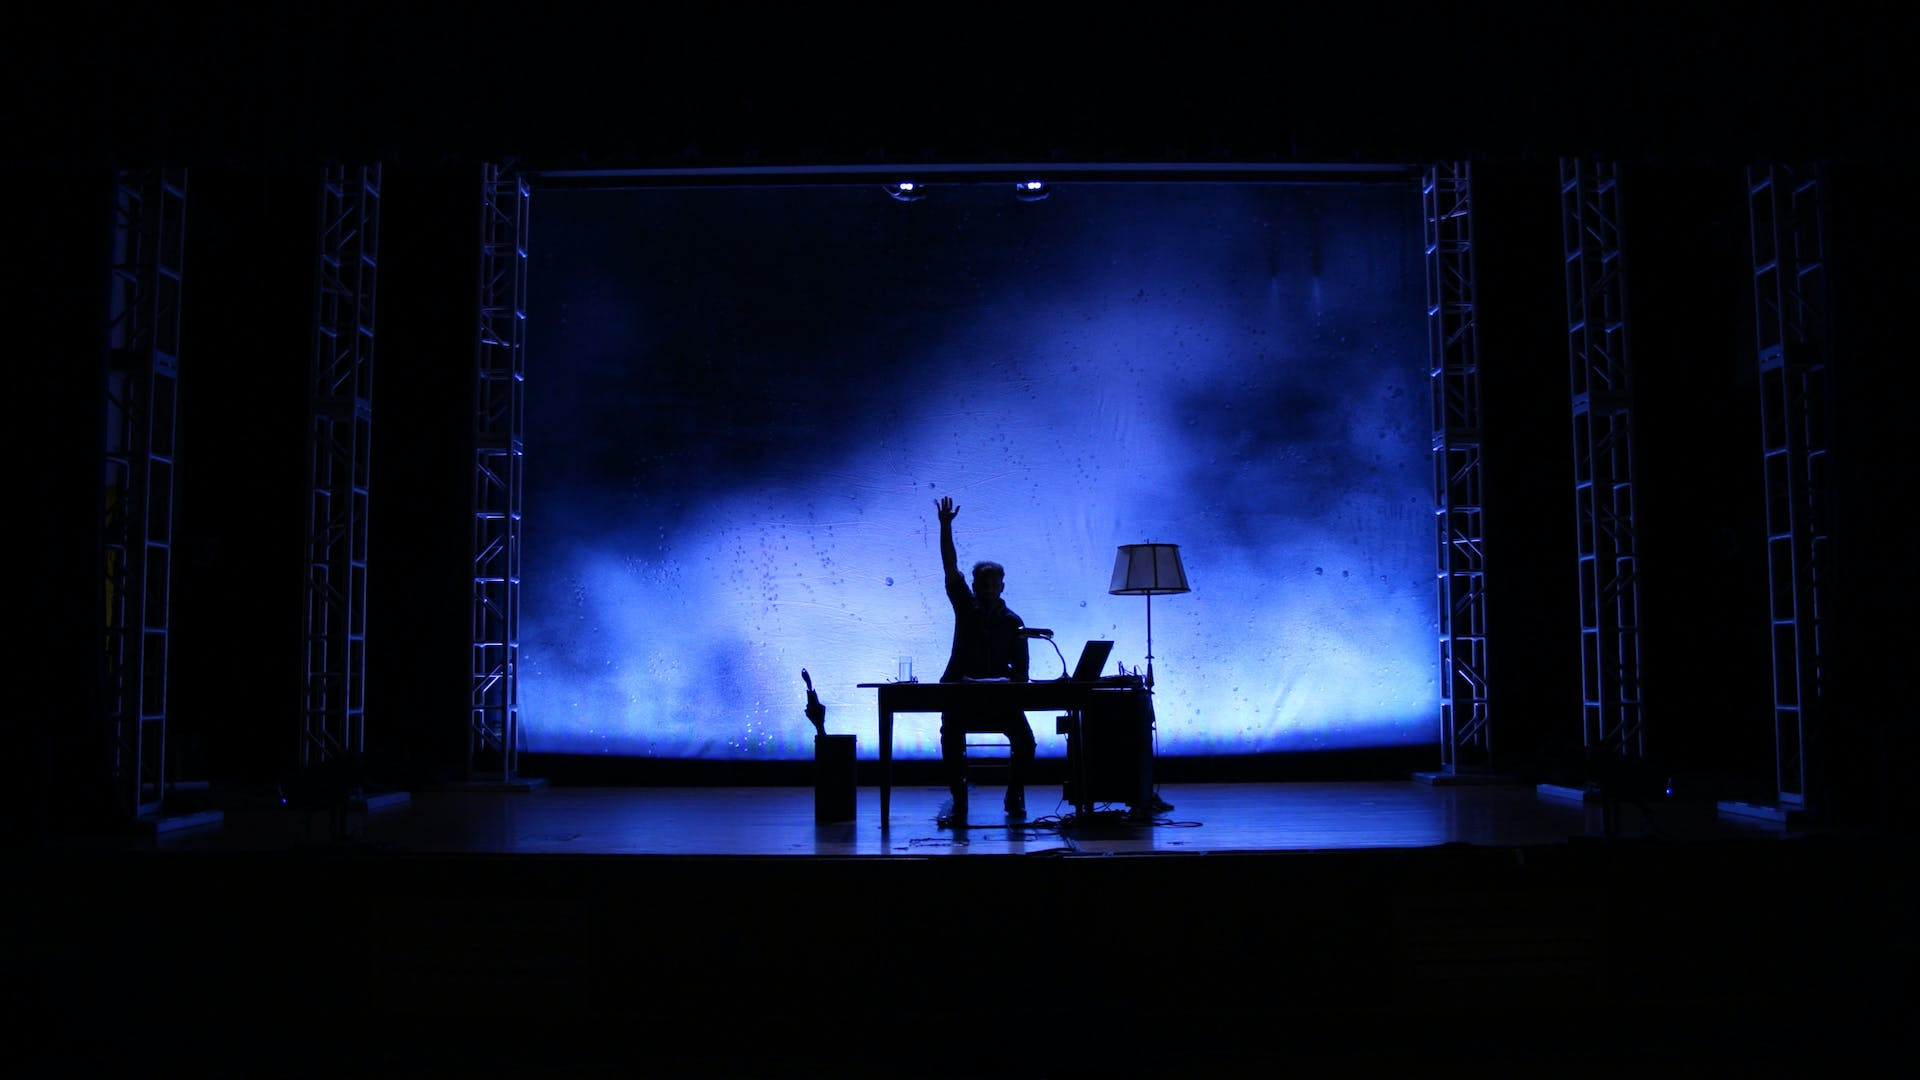 Josh Fox on a stage, in silhouette against a blue background. He is seated at a table with his arm raised in the air.